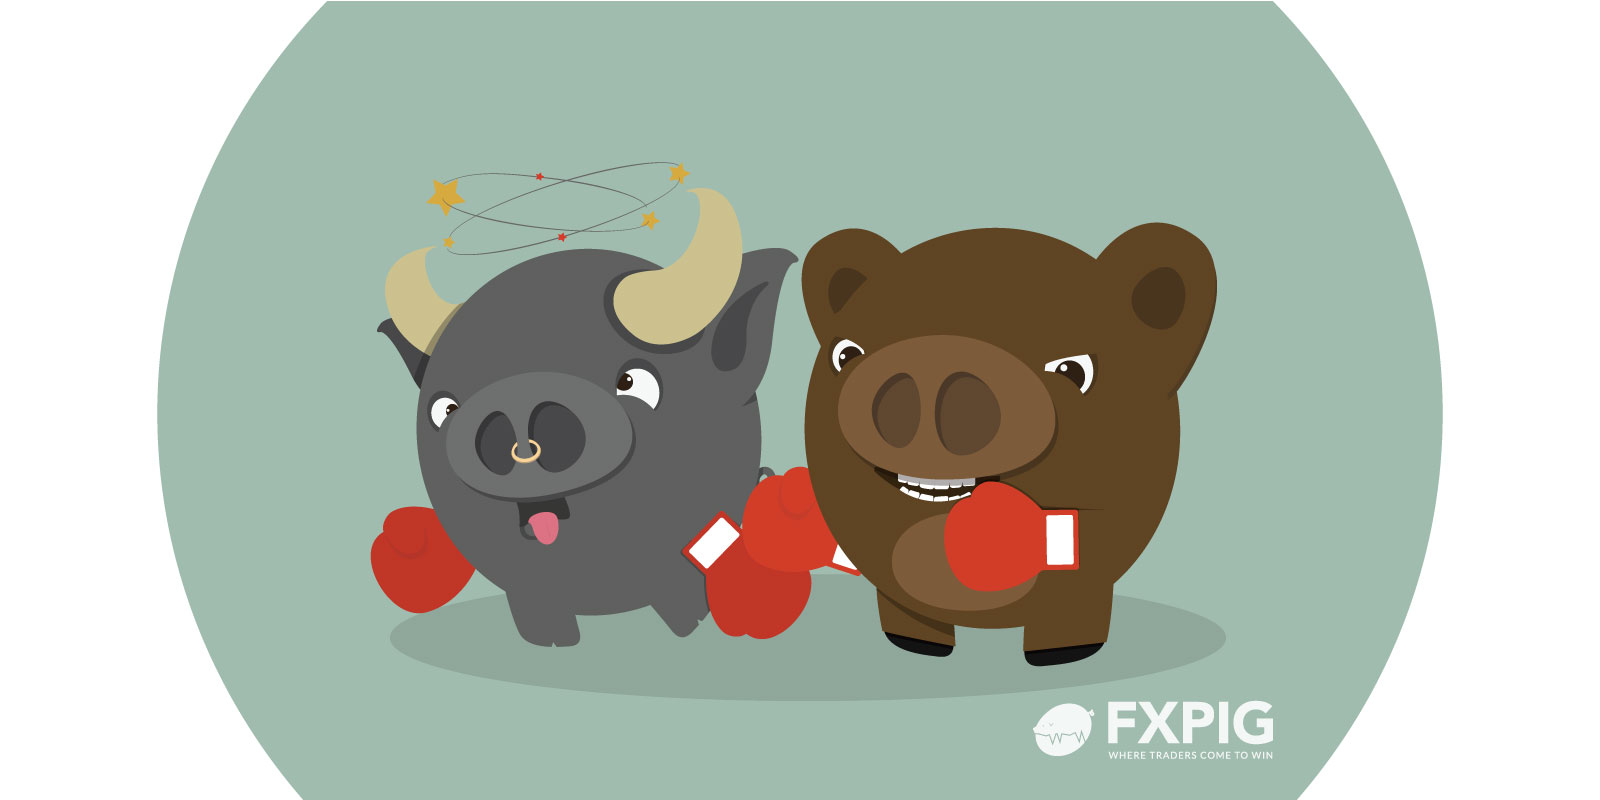 Bulls-and -Bears_Forex_FXPIG_10.04.2019